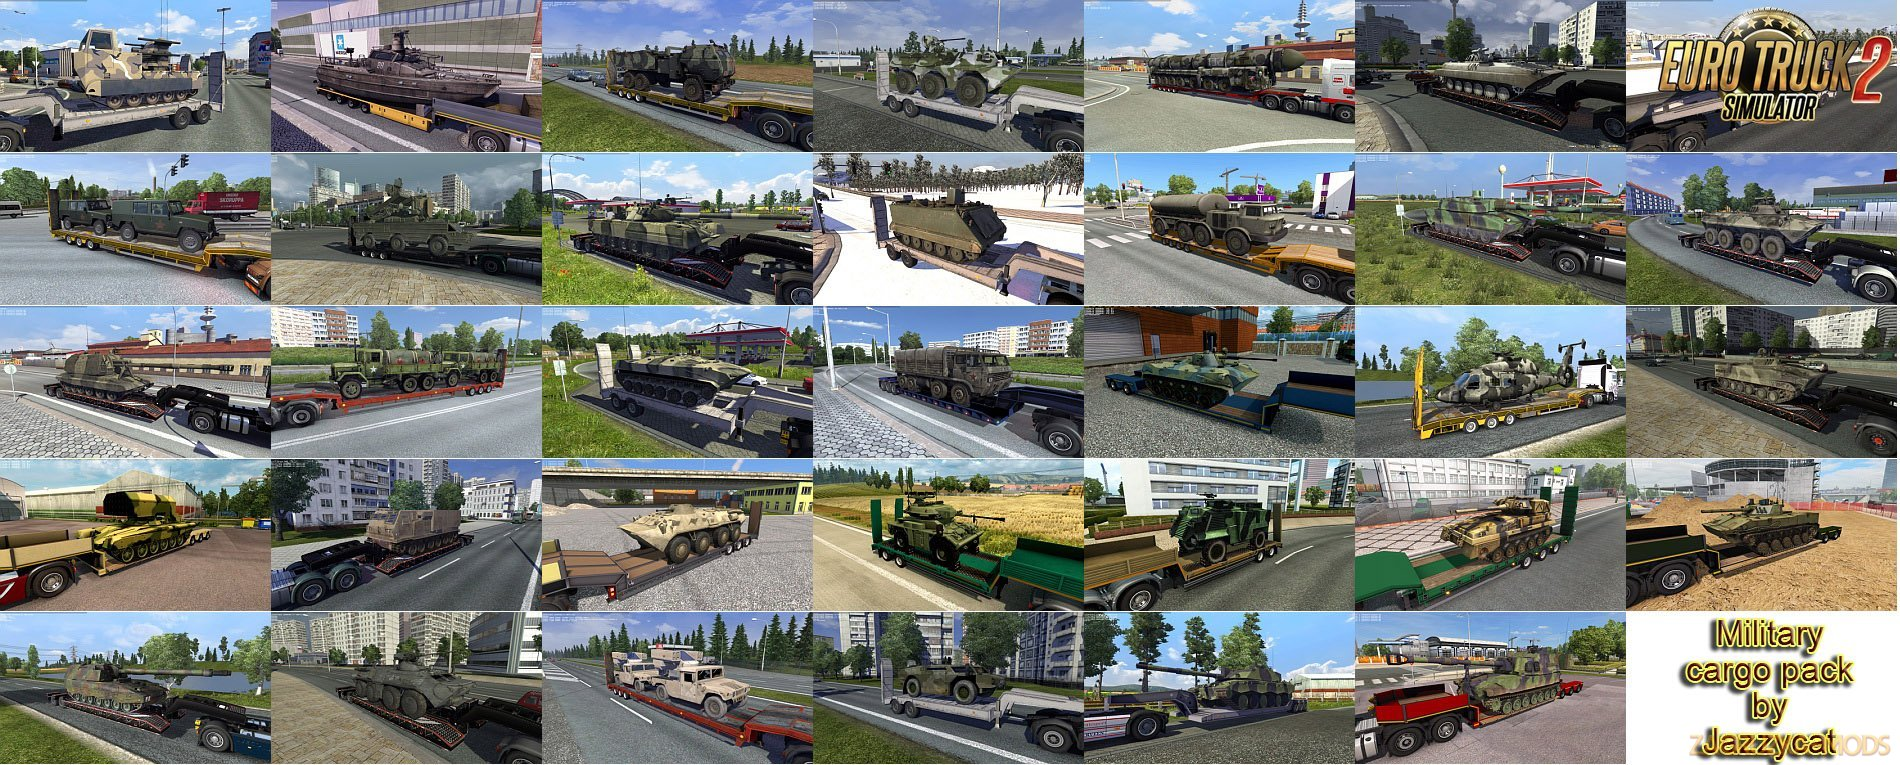 Military Cargo Pack v2.6 by Jazzycat